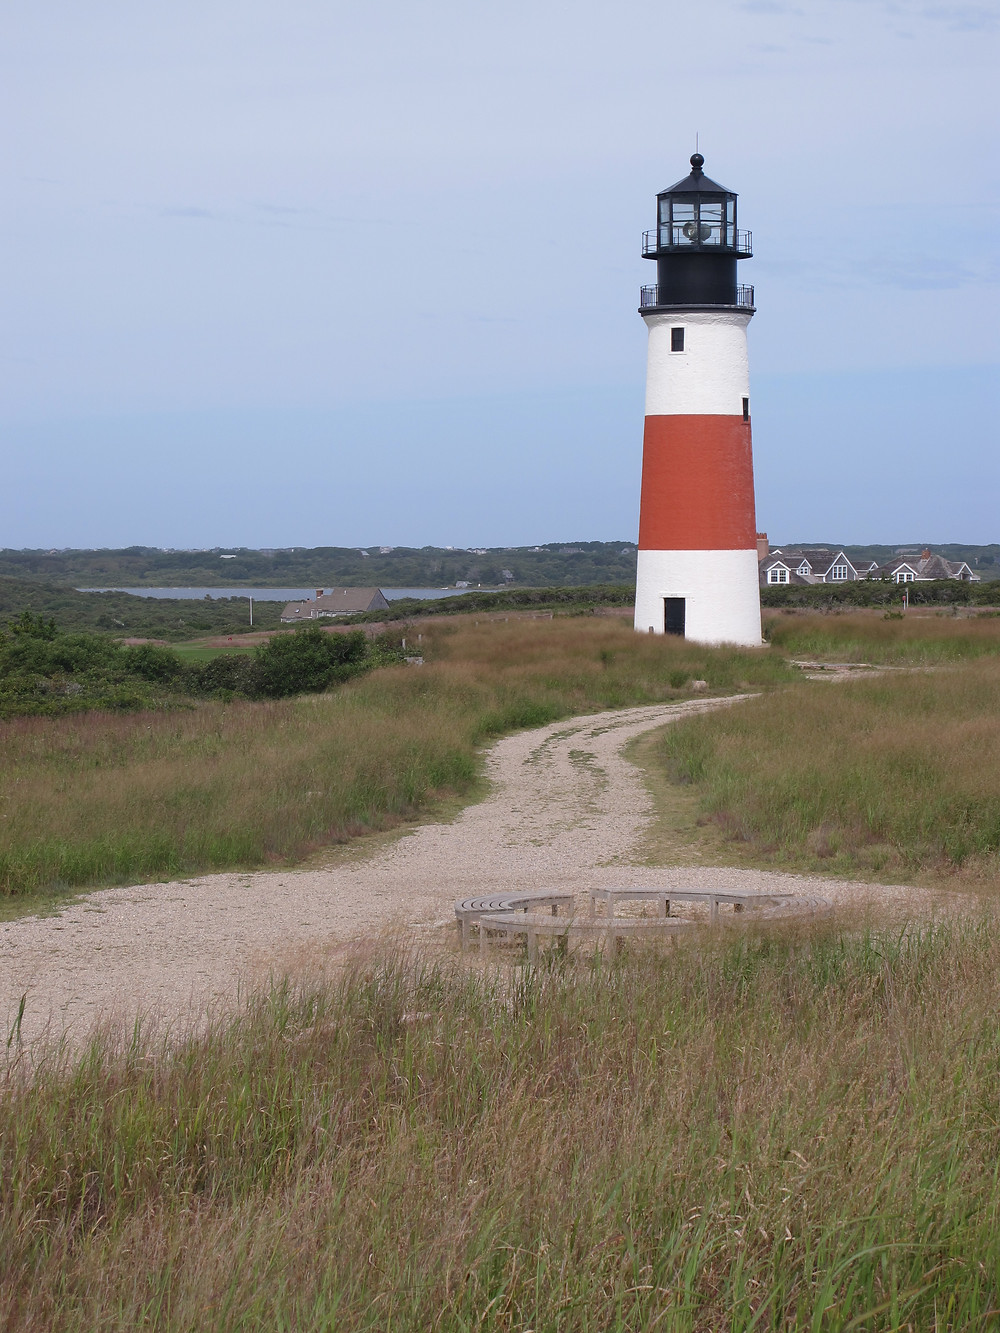 Nantucket Lighthouse on the west of the island